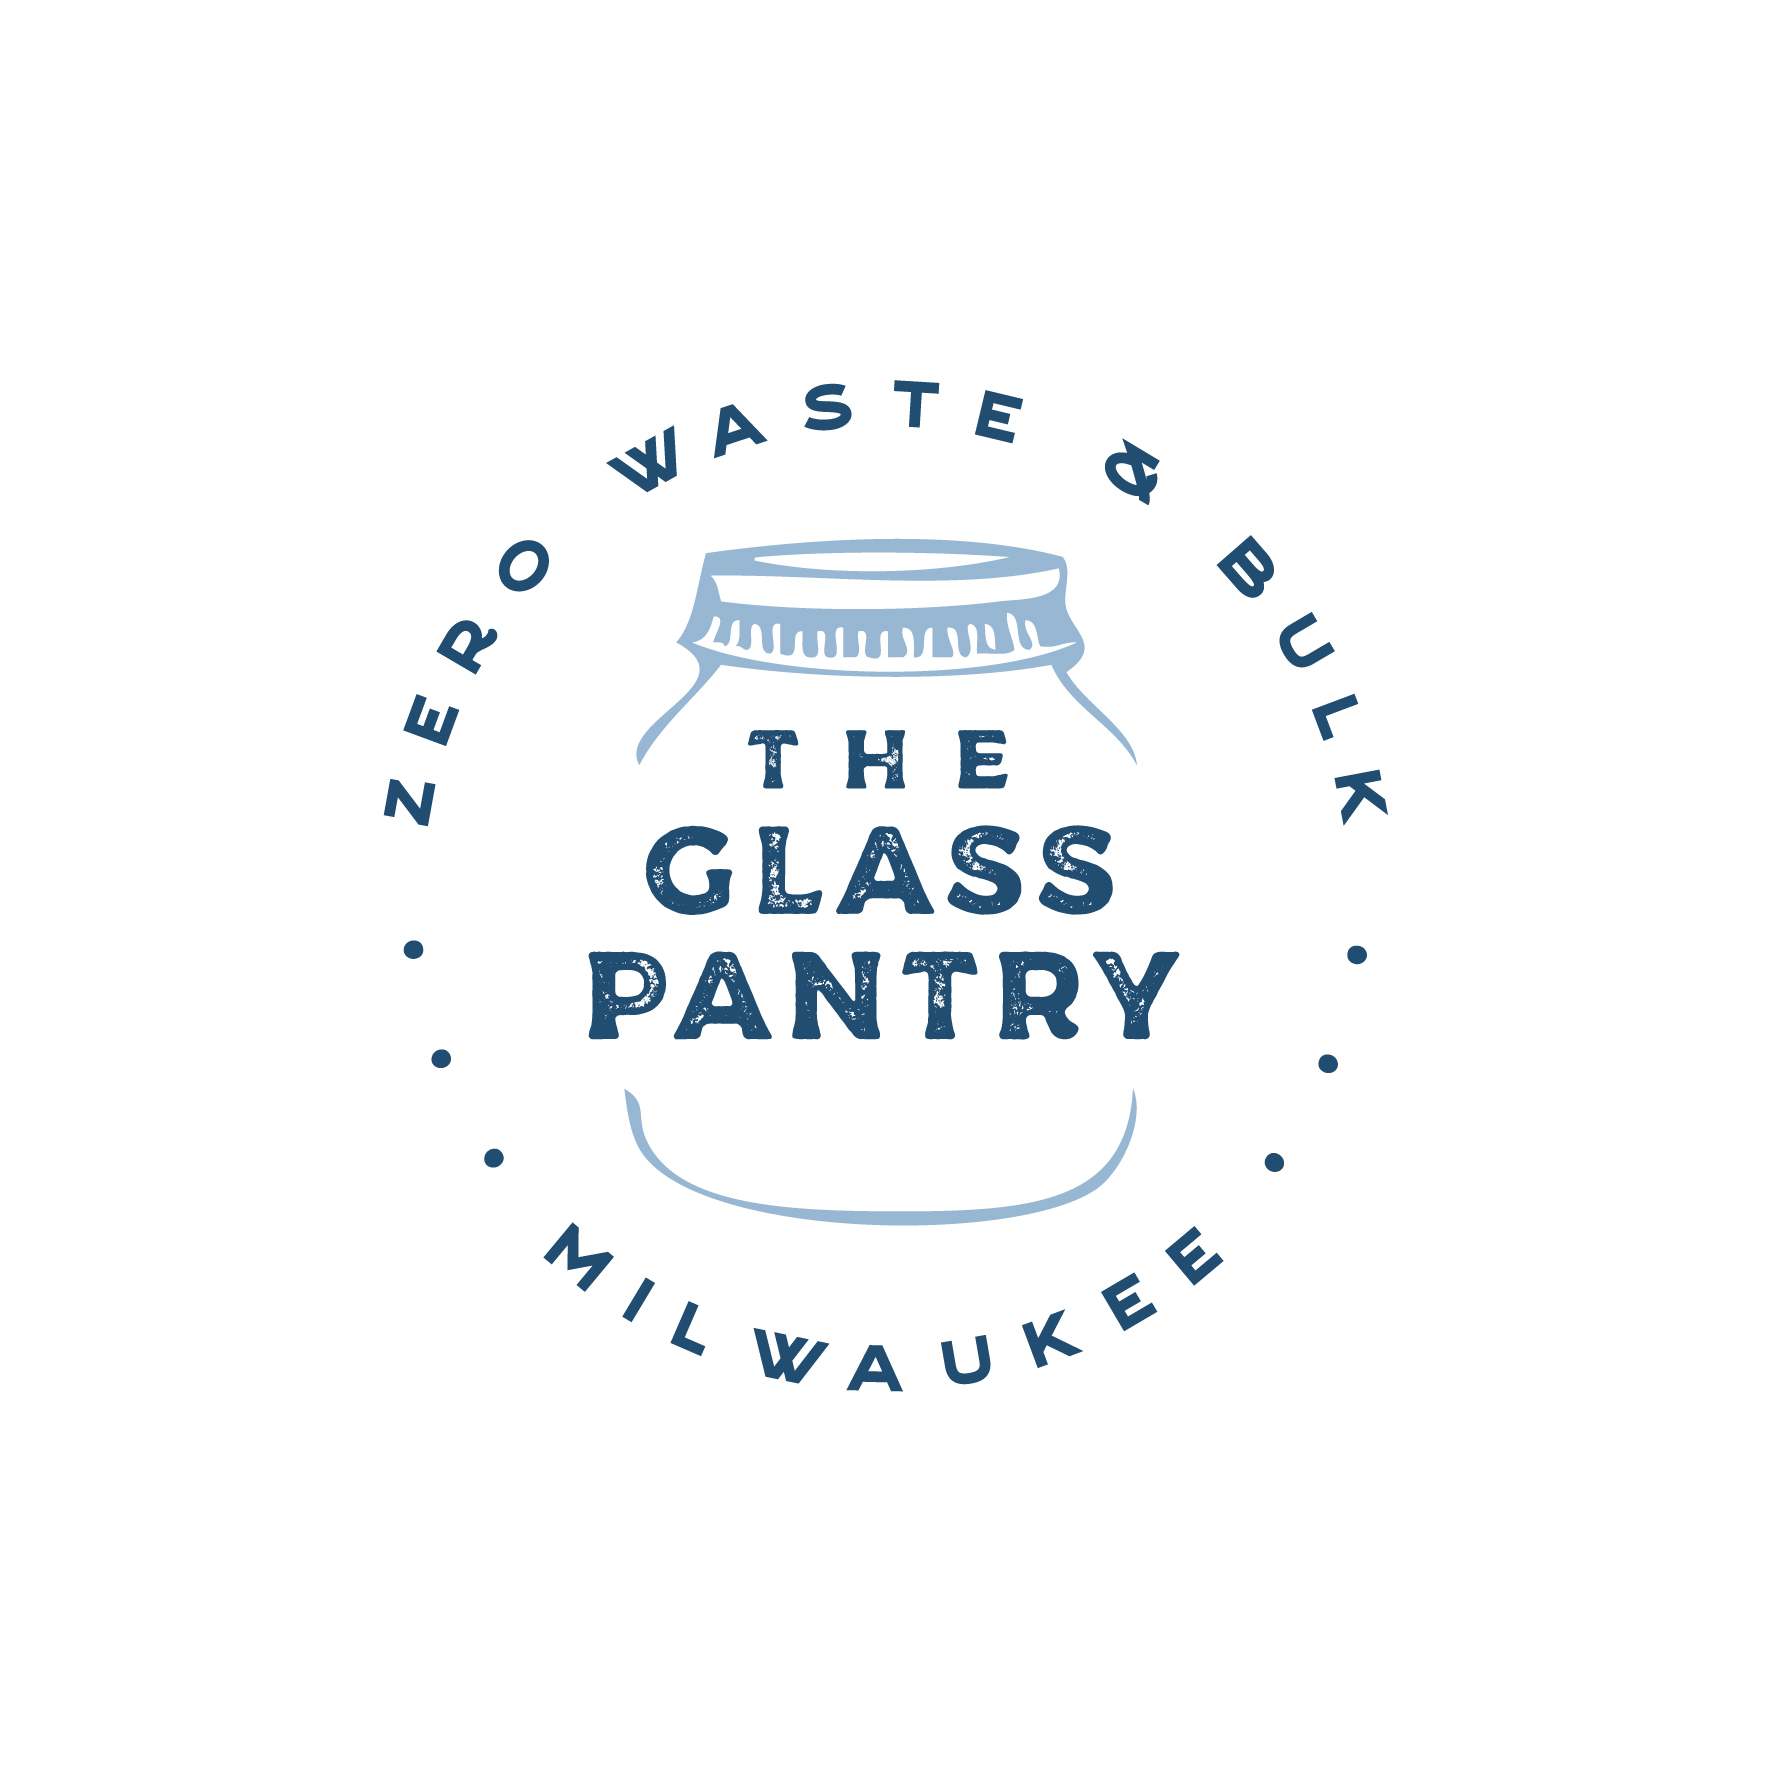 the glass pantry logo - dark blue writing on a white background